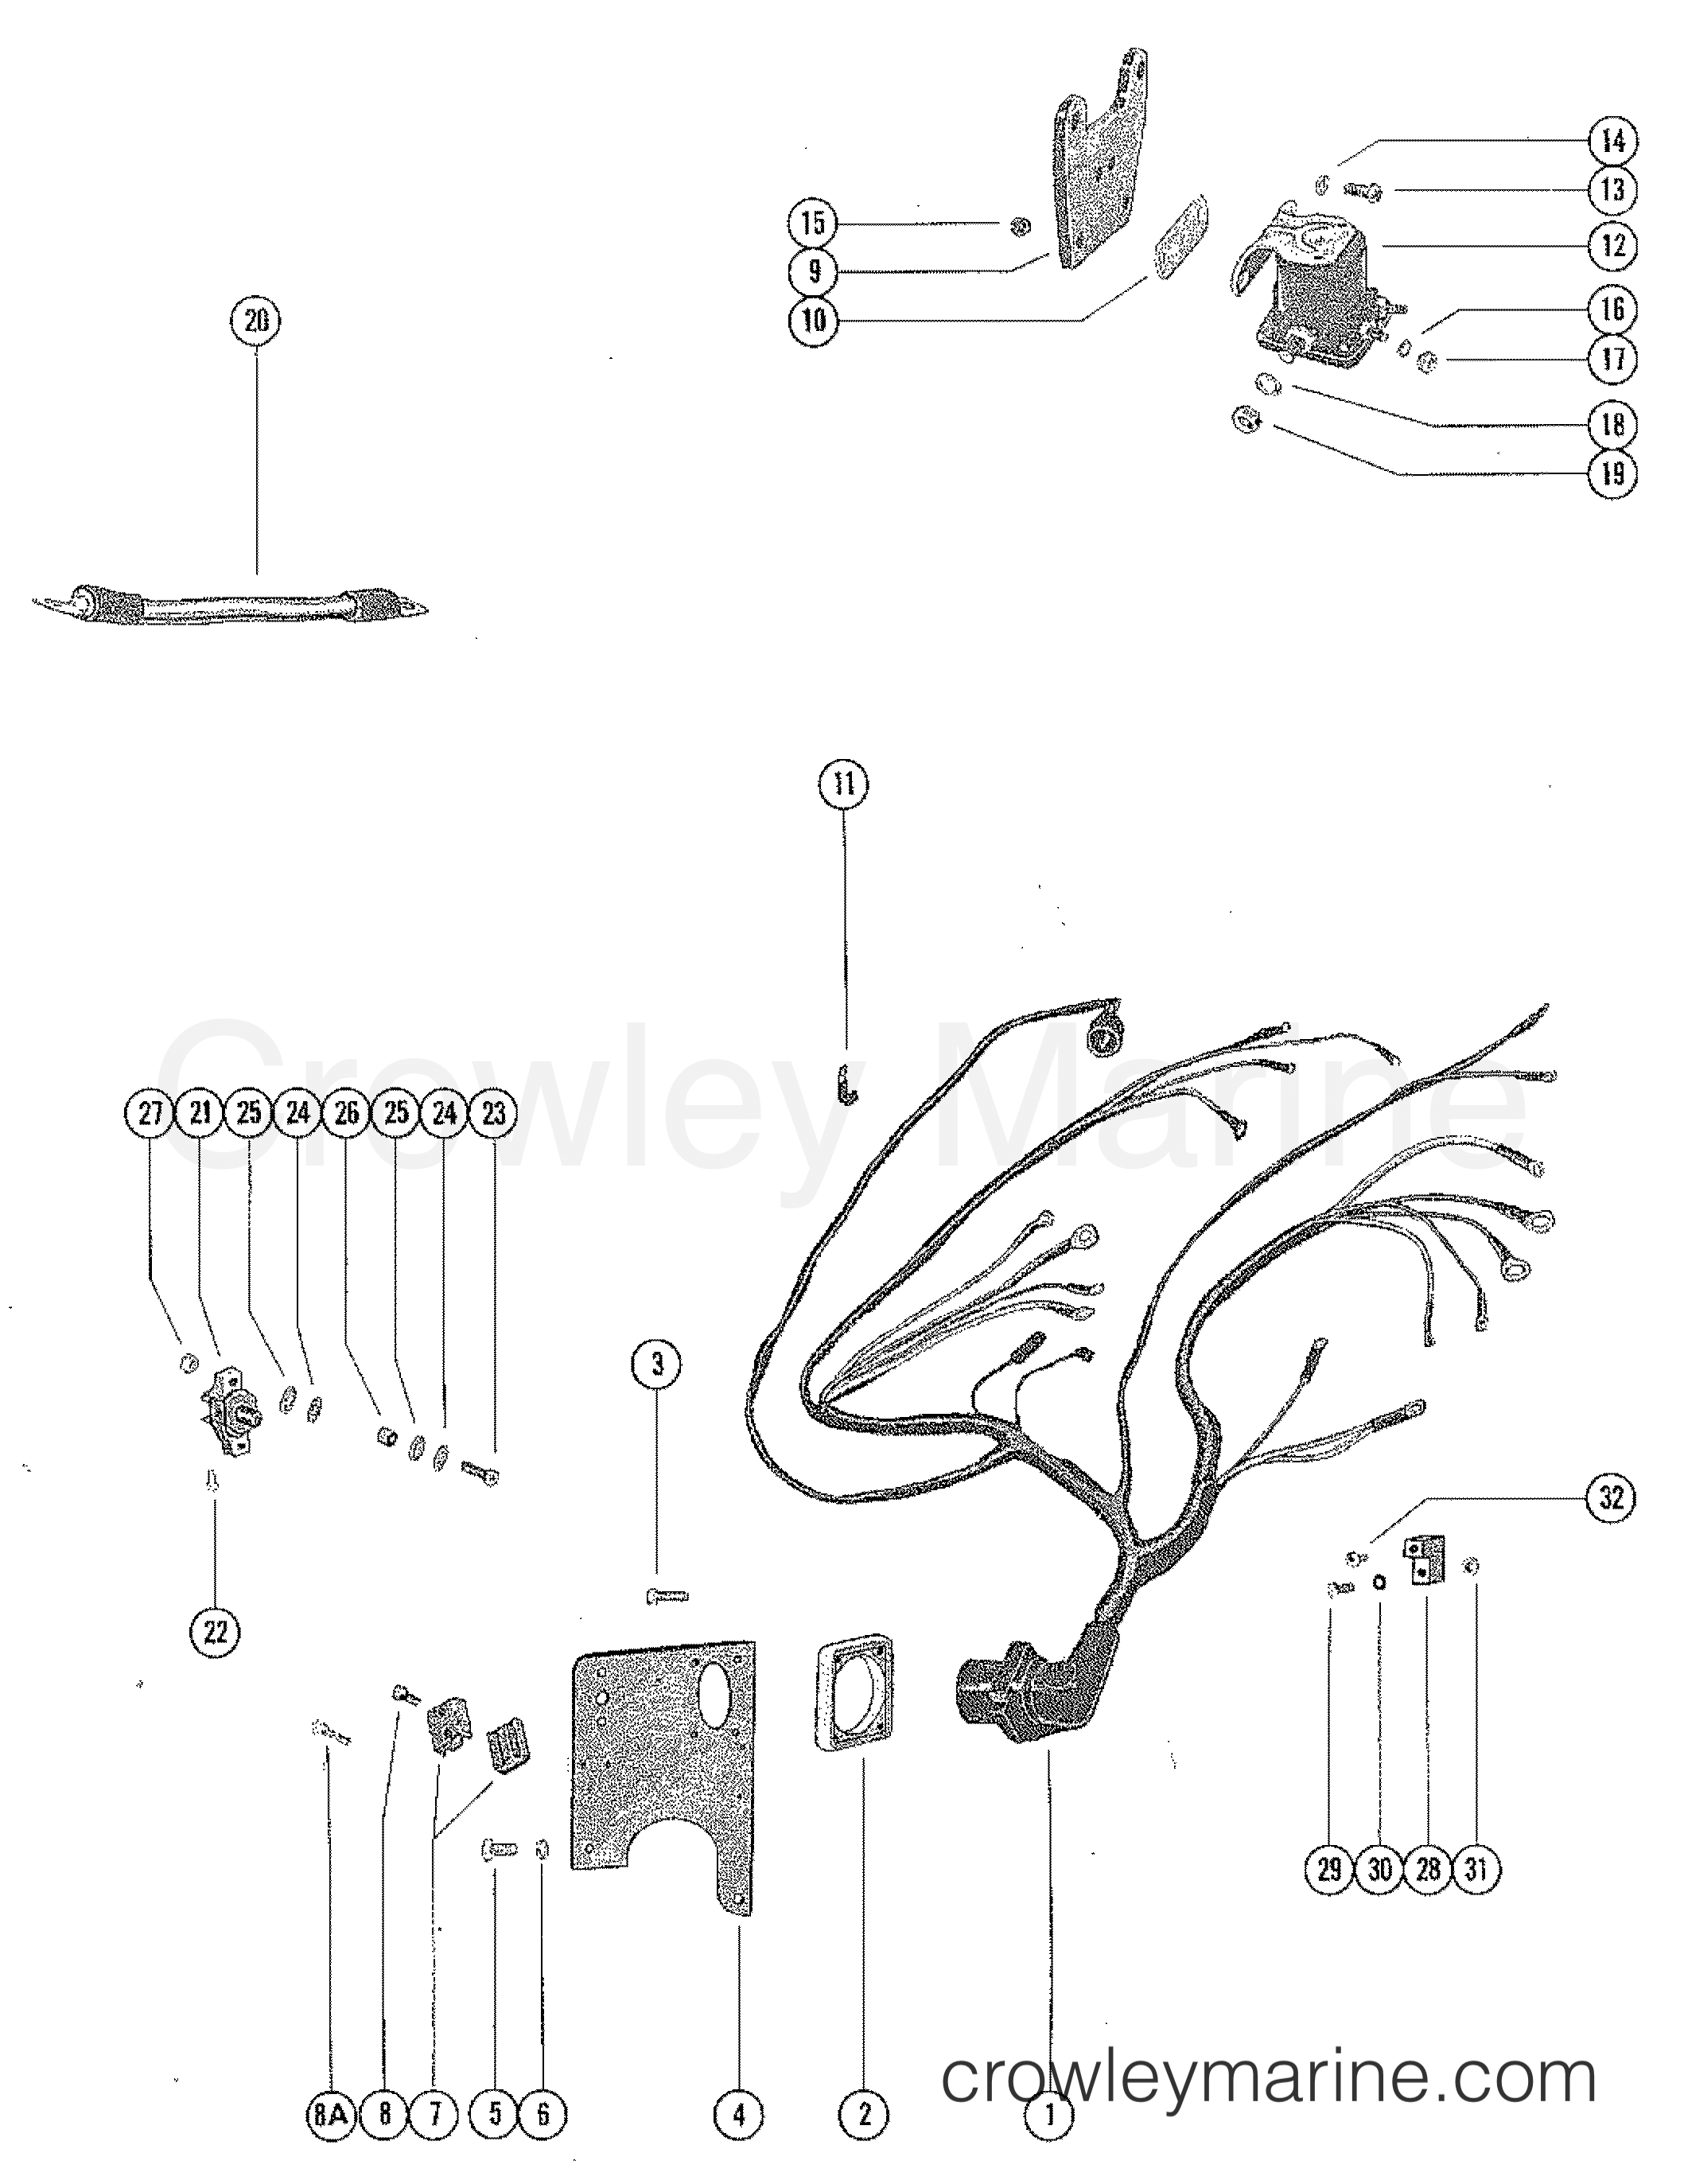 wiring harness, circuit breaker & startr solenoid (stern dr m 12071 a50 wiring harness 1974 ford 302 wiring harness diagram #16